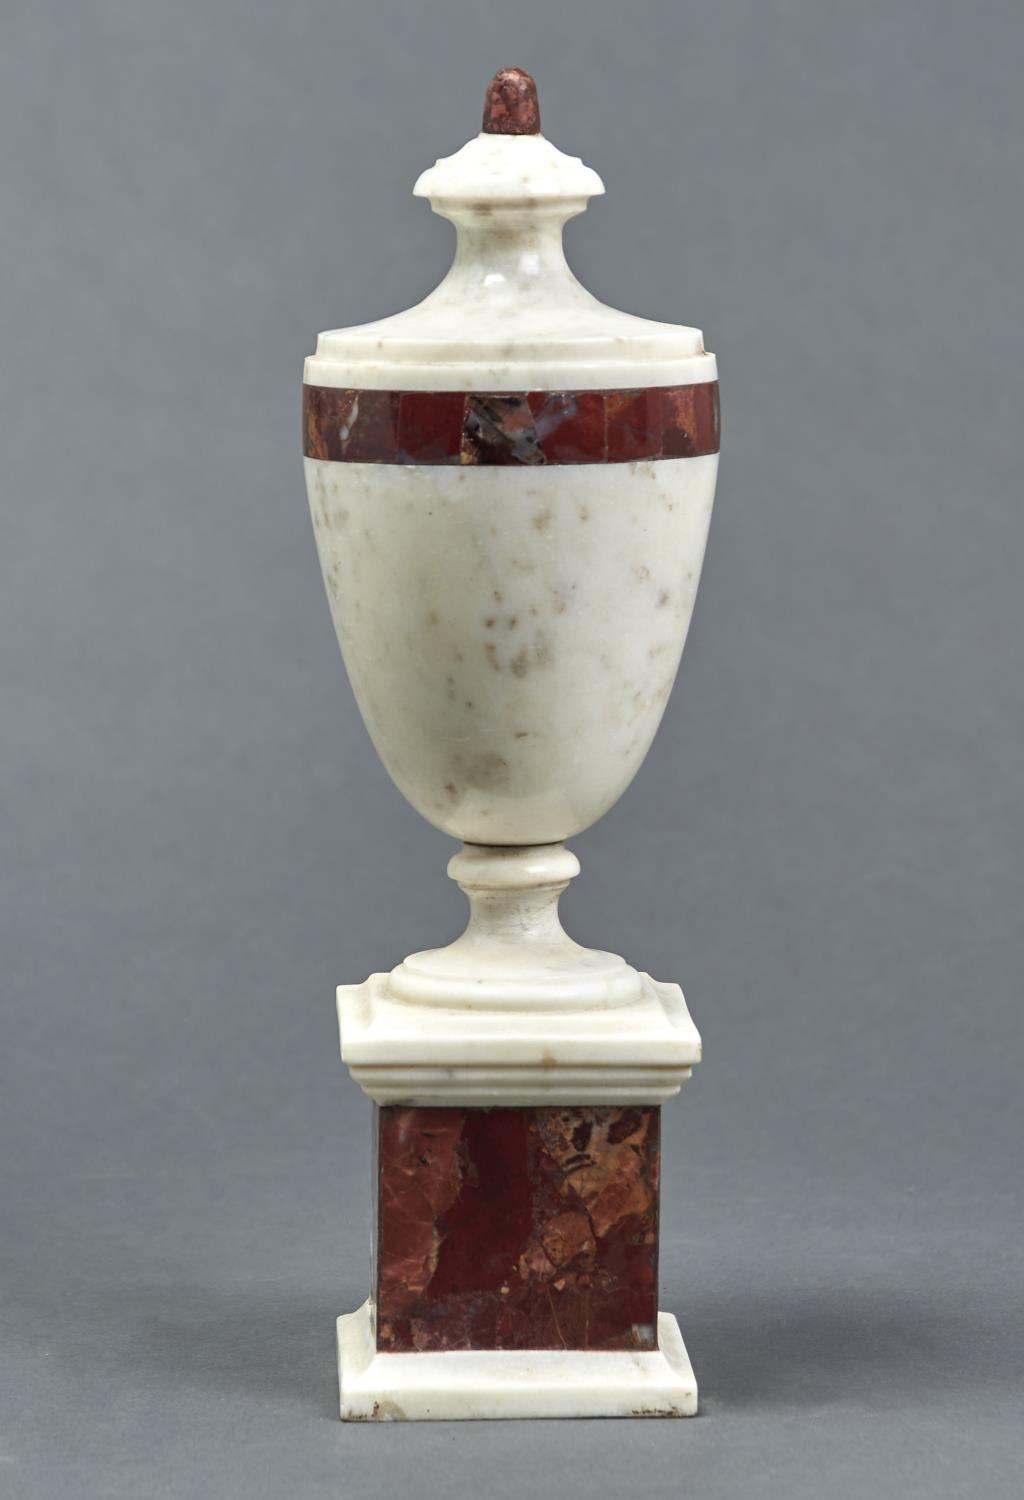 A MARBLE URN, 20TH C, IN NEO CLASSICAL STYLE, OF SHIELD SHAPE WITH BAND OF RED BRECCIA MARBLE AND